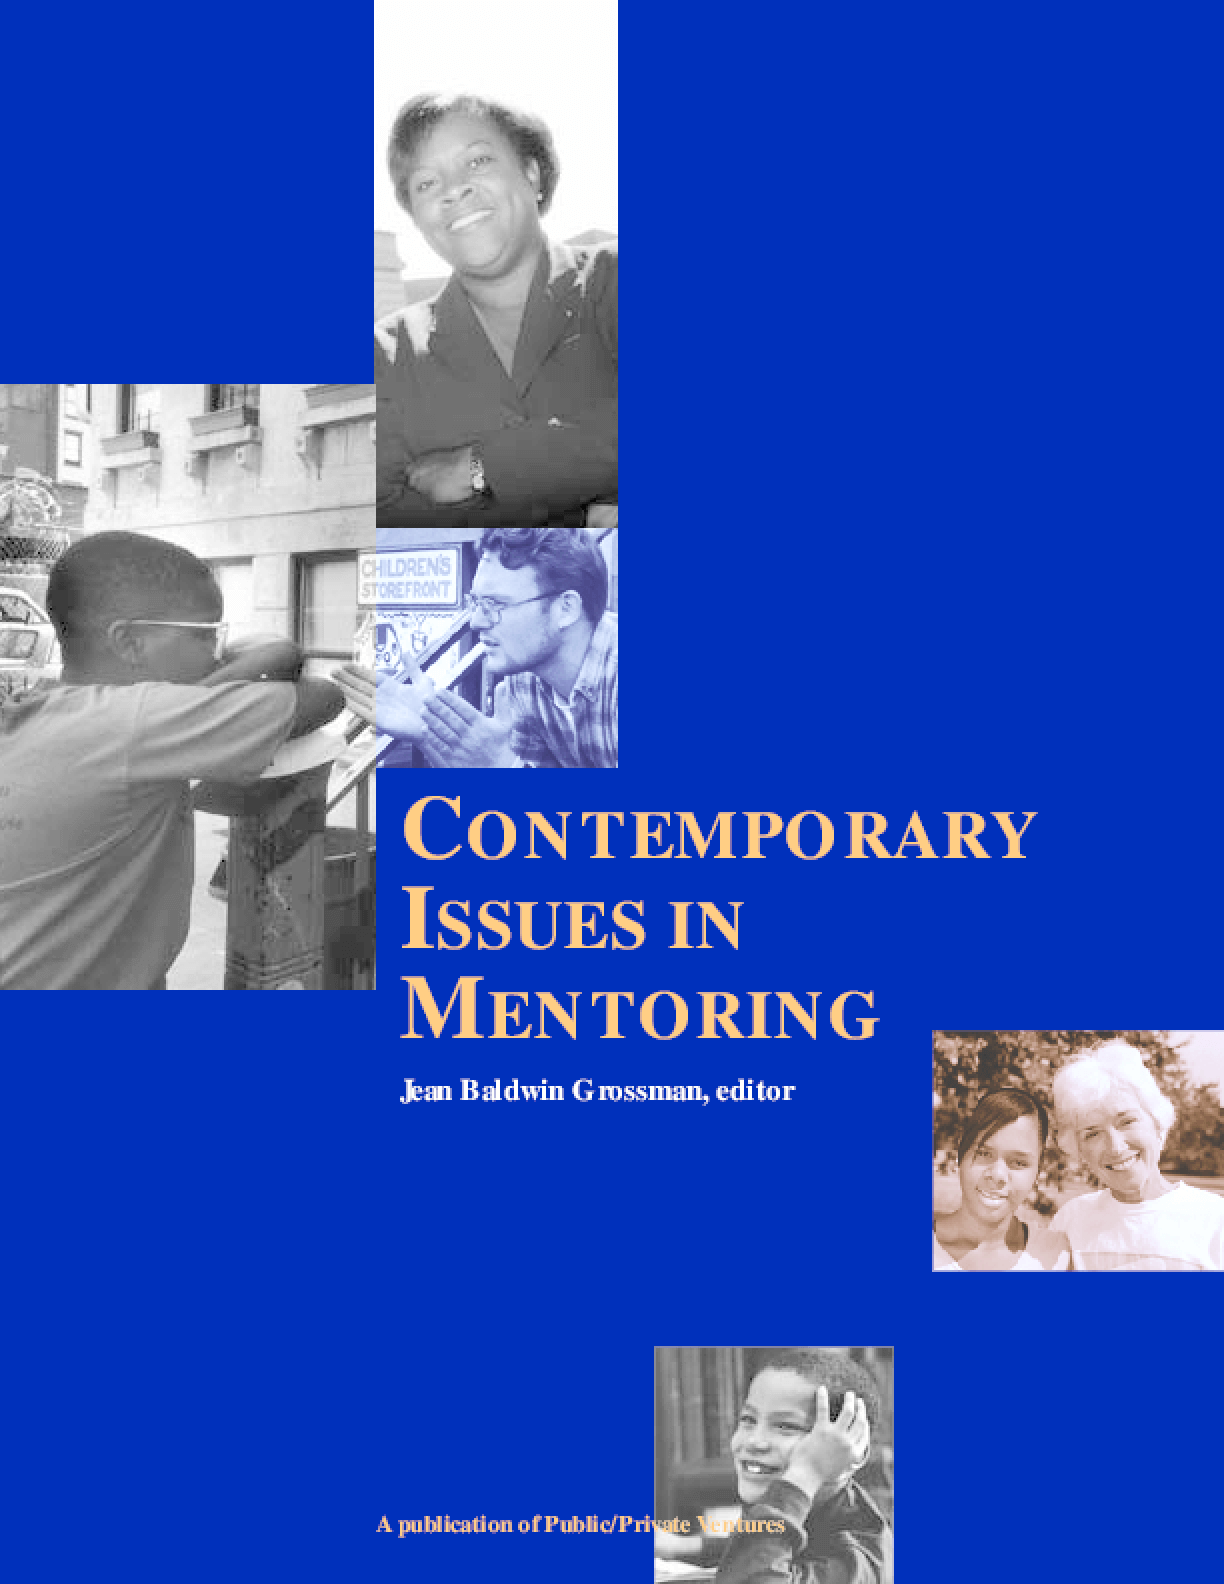 Contemporary Issues in Mentoring